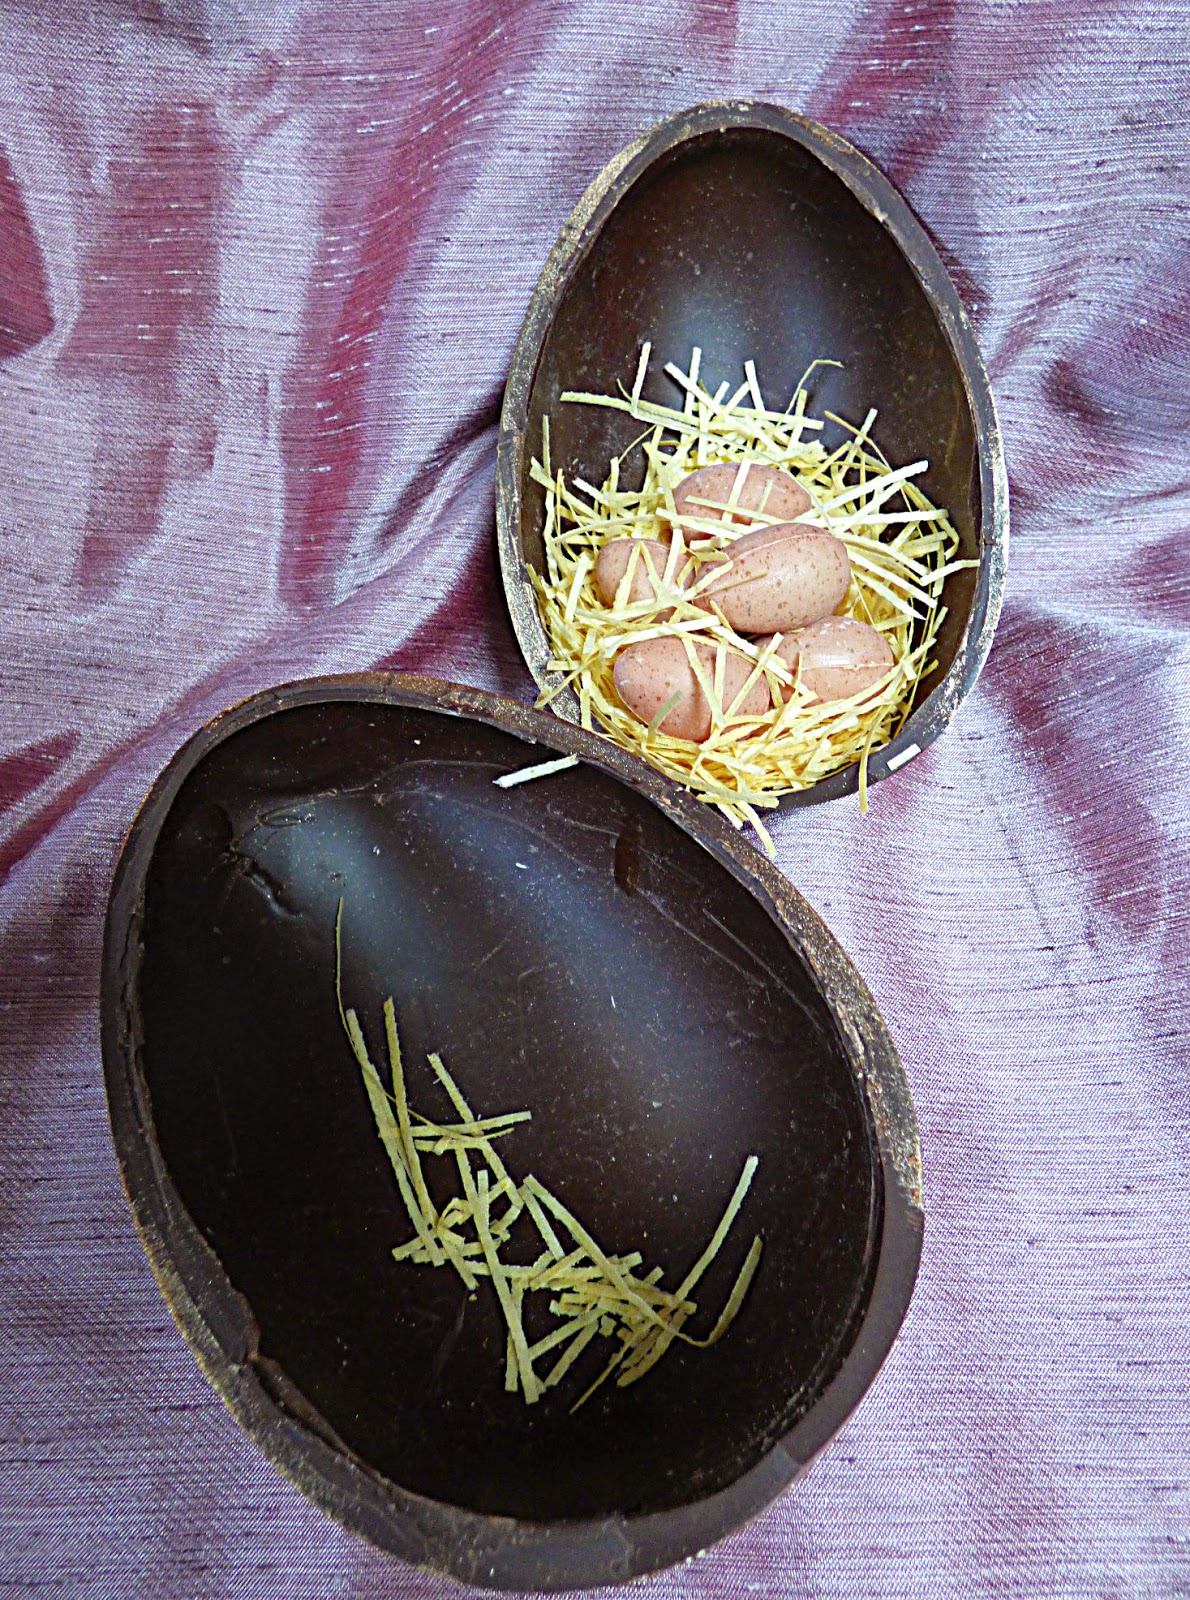 Easter egg, chocolate egg